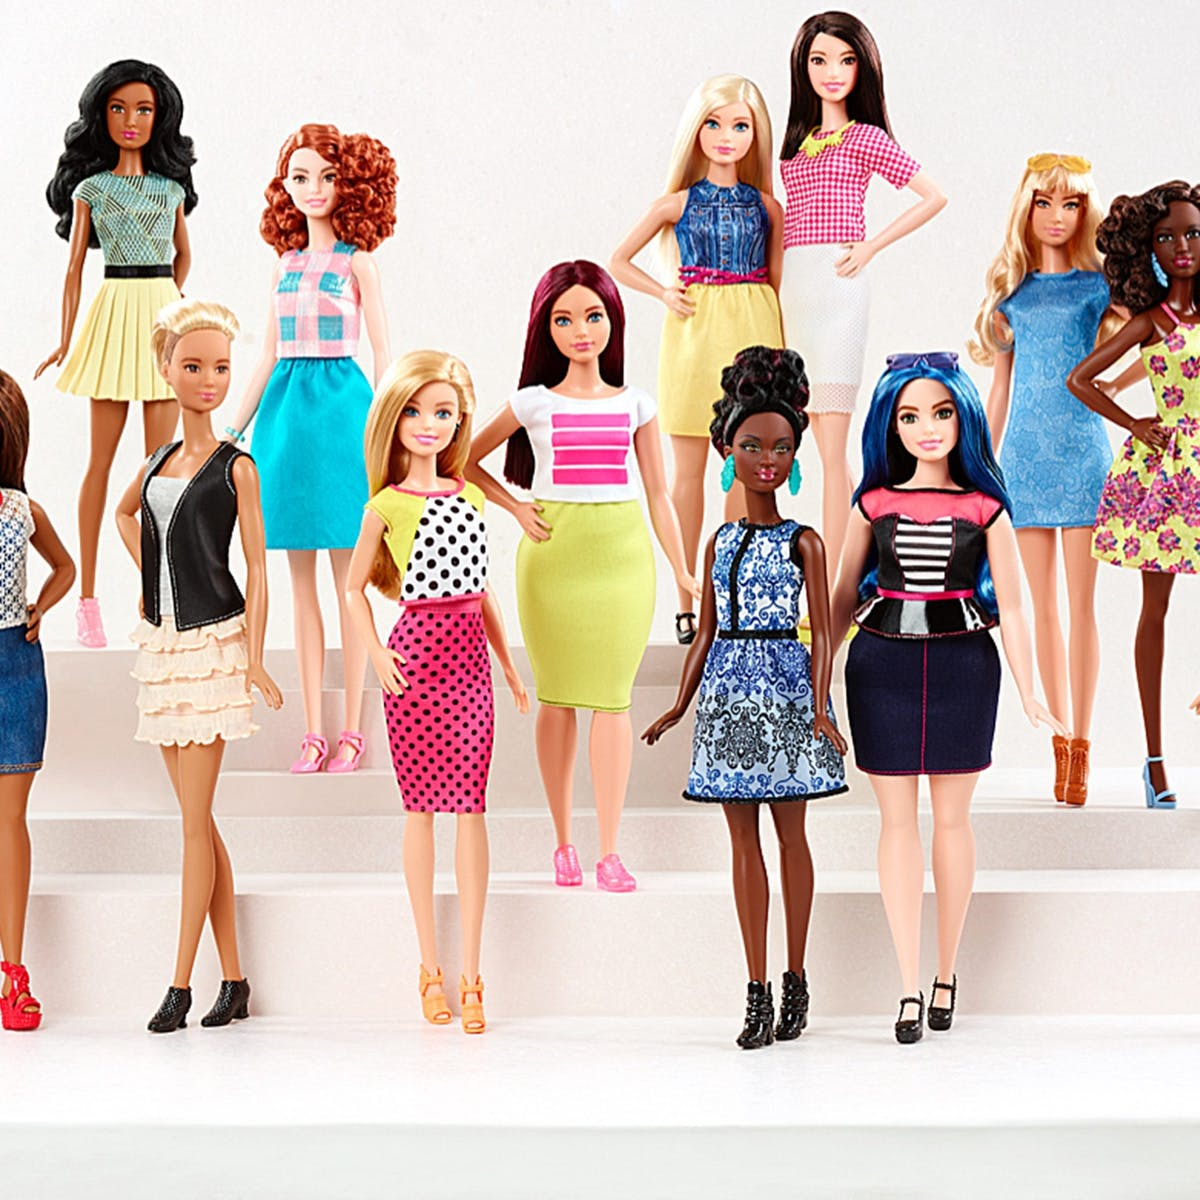 Drastic Plastic A Look At Barbie S New Bodies